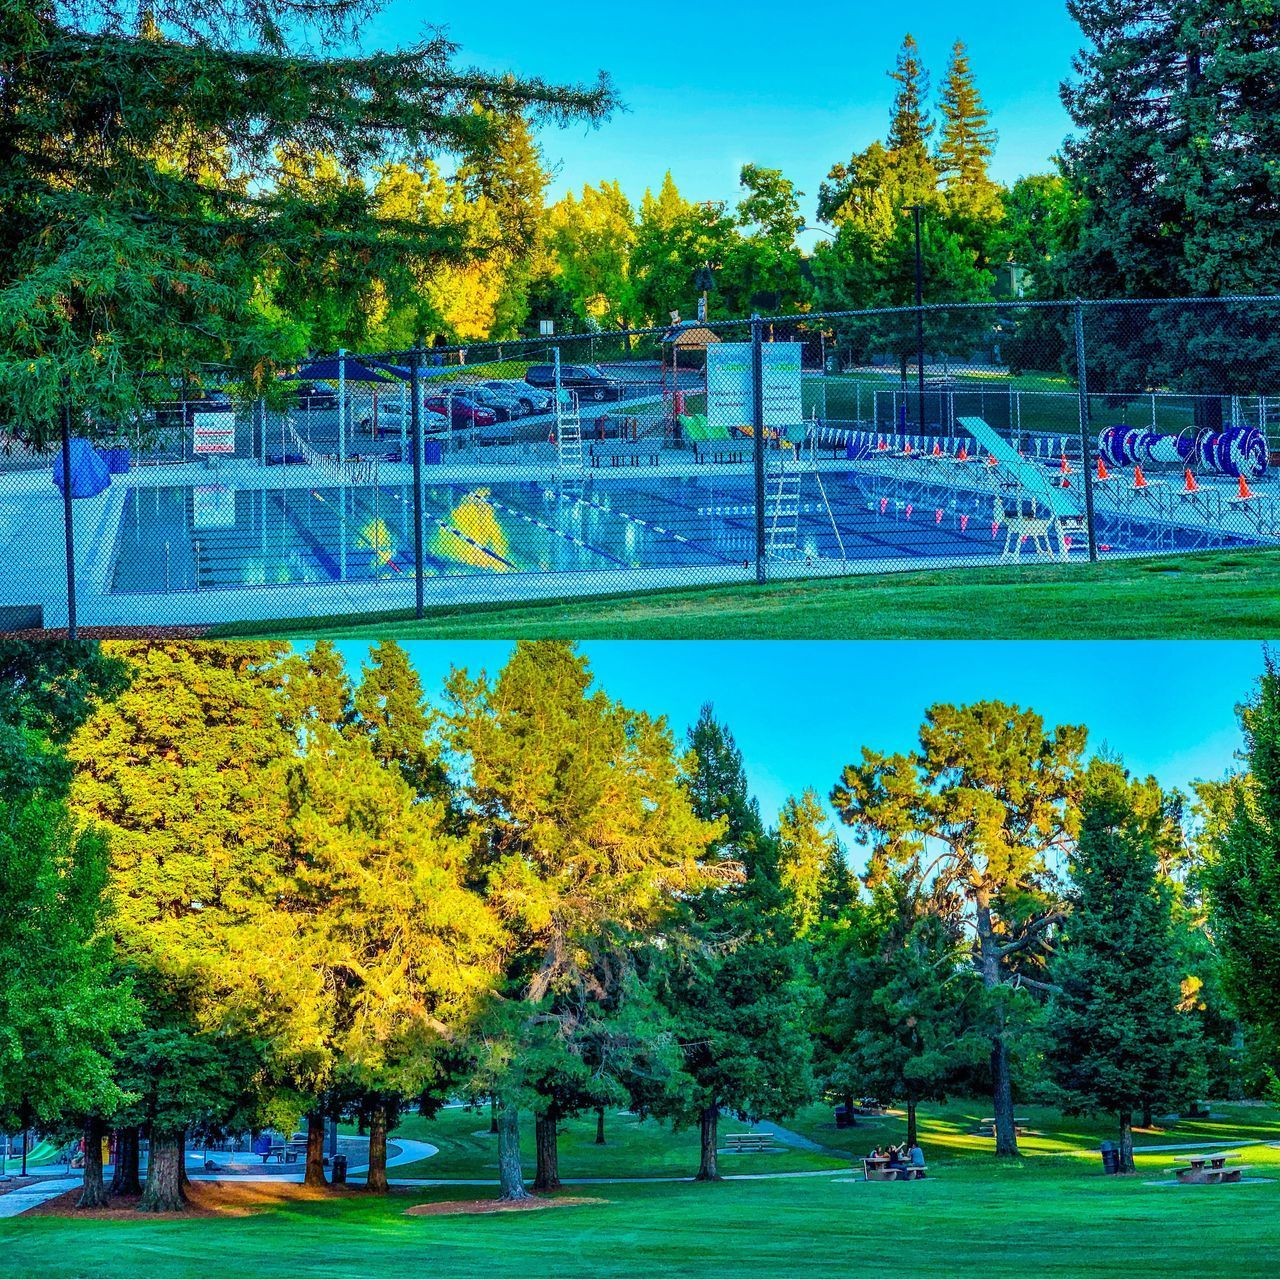 plant, tree, grass, day, sport, nature, park, green color, group of people, playing, leisure activity, real people, park - man made space, outdoors, autumn, soccer, team sport, recreational pursuit, large group of people, men, change